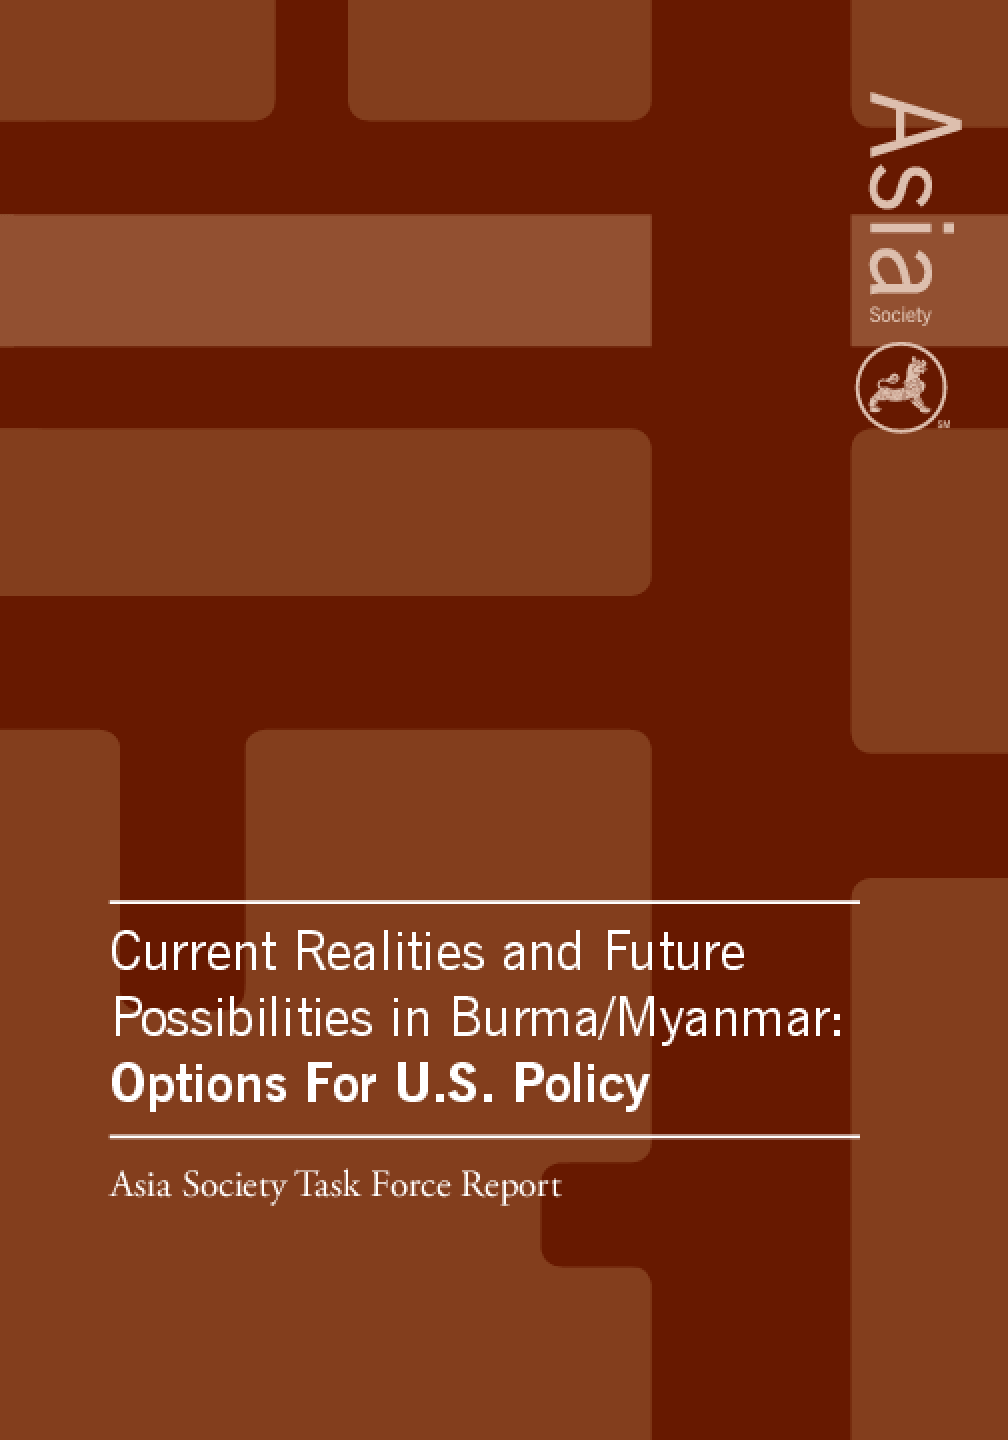 Current Realities and Future Possibilities in Burma/Myanmar: Options for U.S. Policy